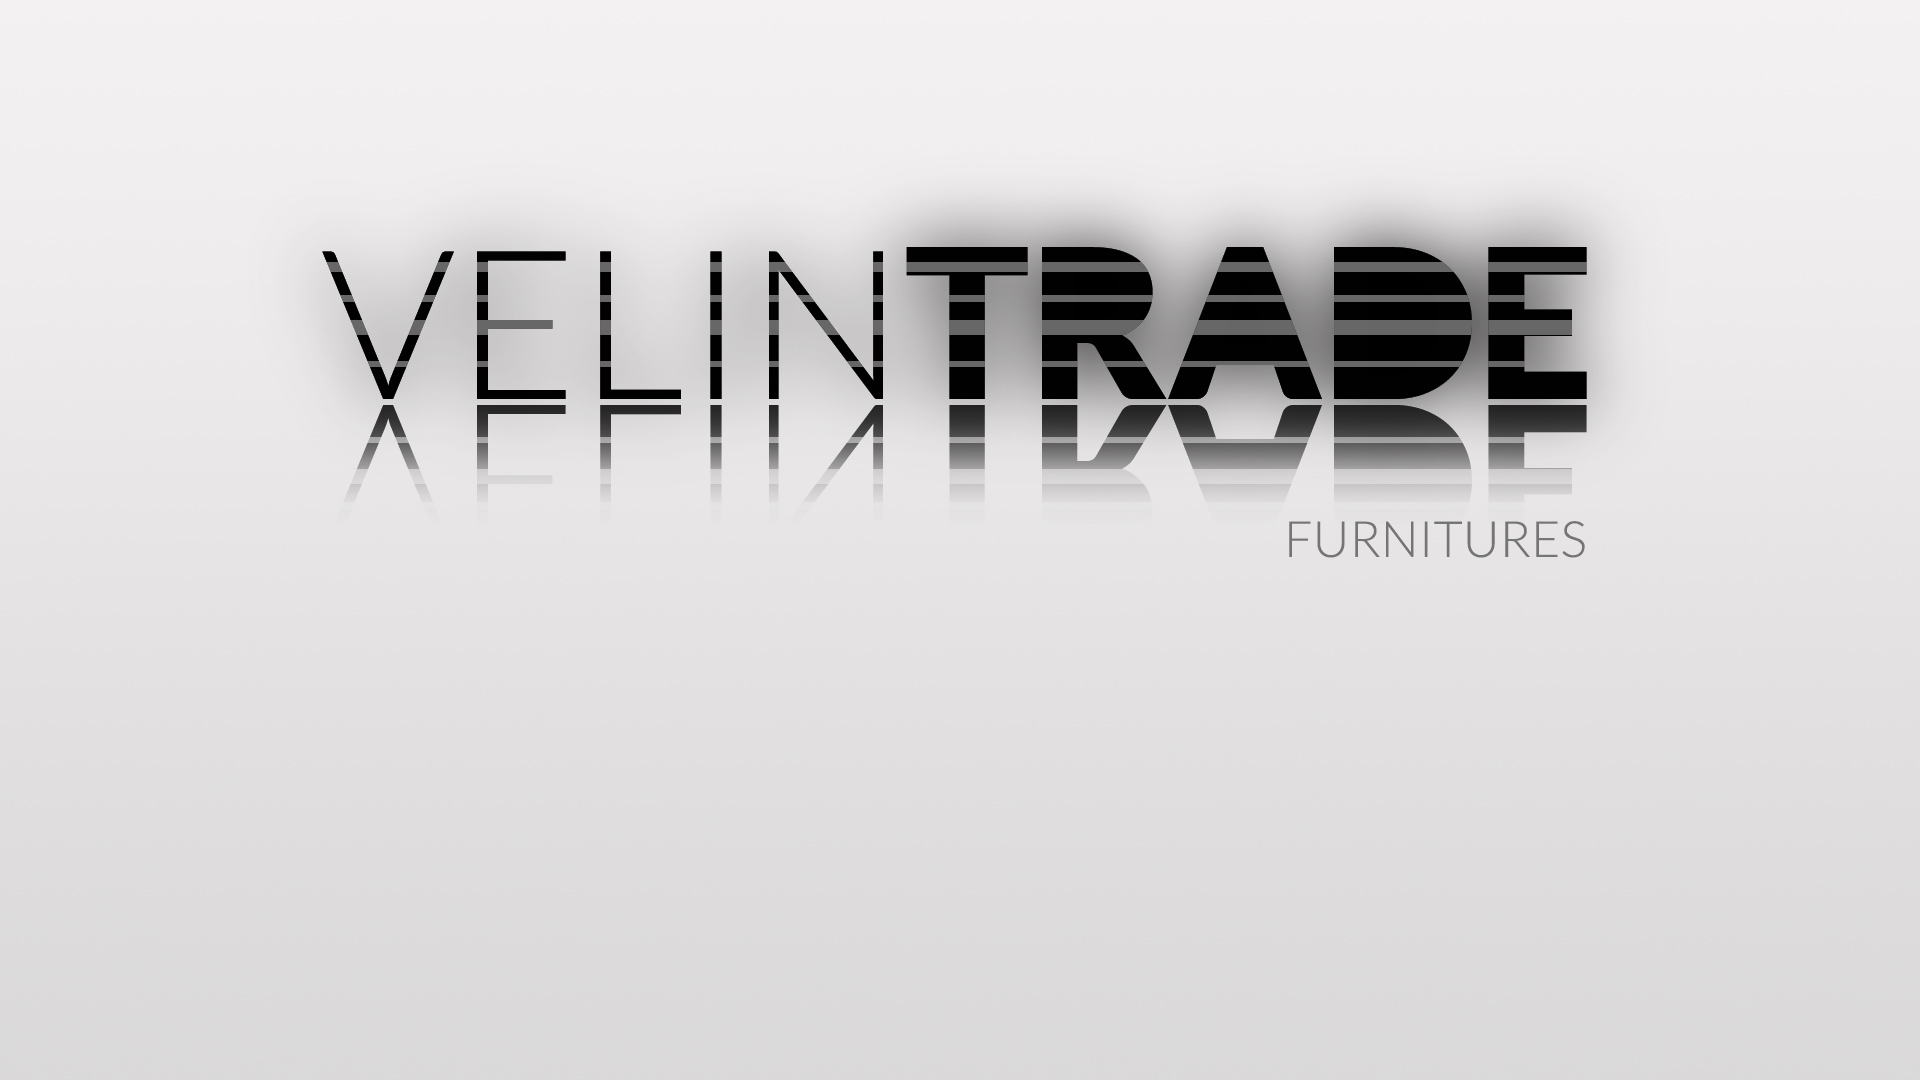 Velintrade Furnitures Logo